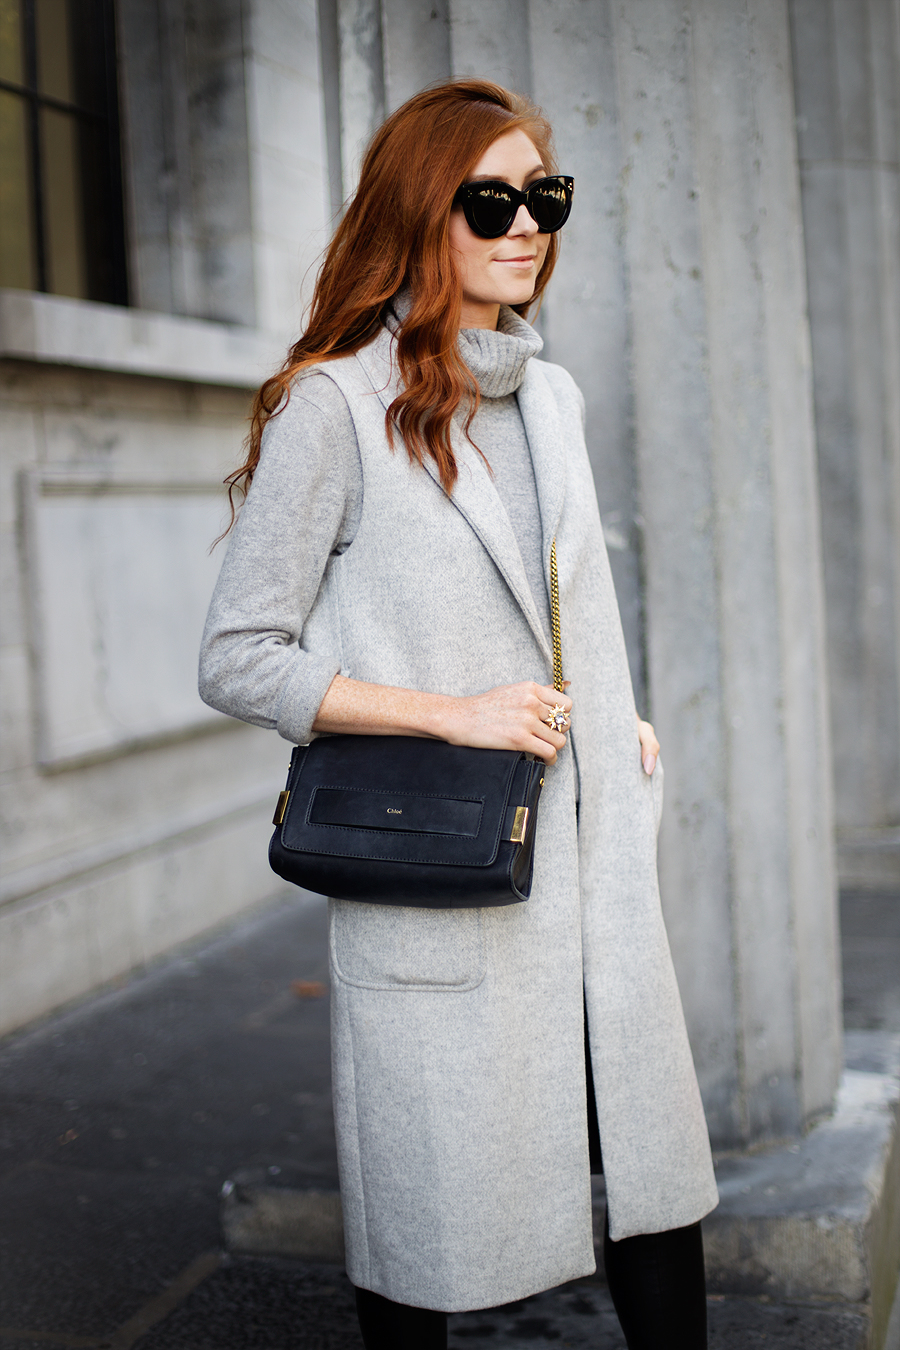 Grey Sleeveless Coat - Leather Leggings - REISS